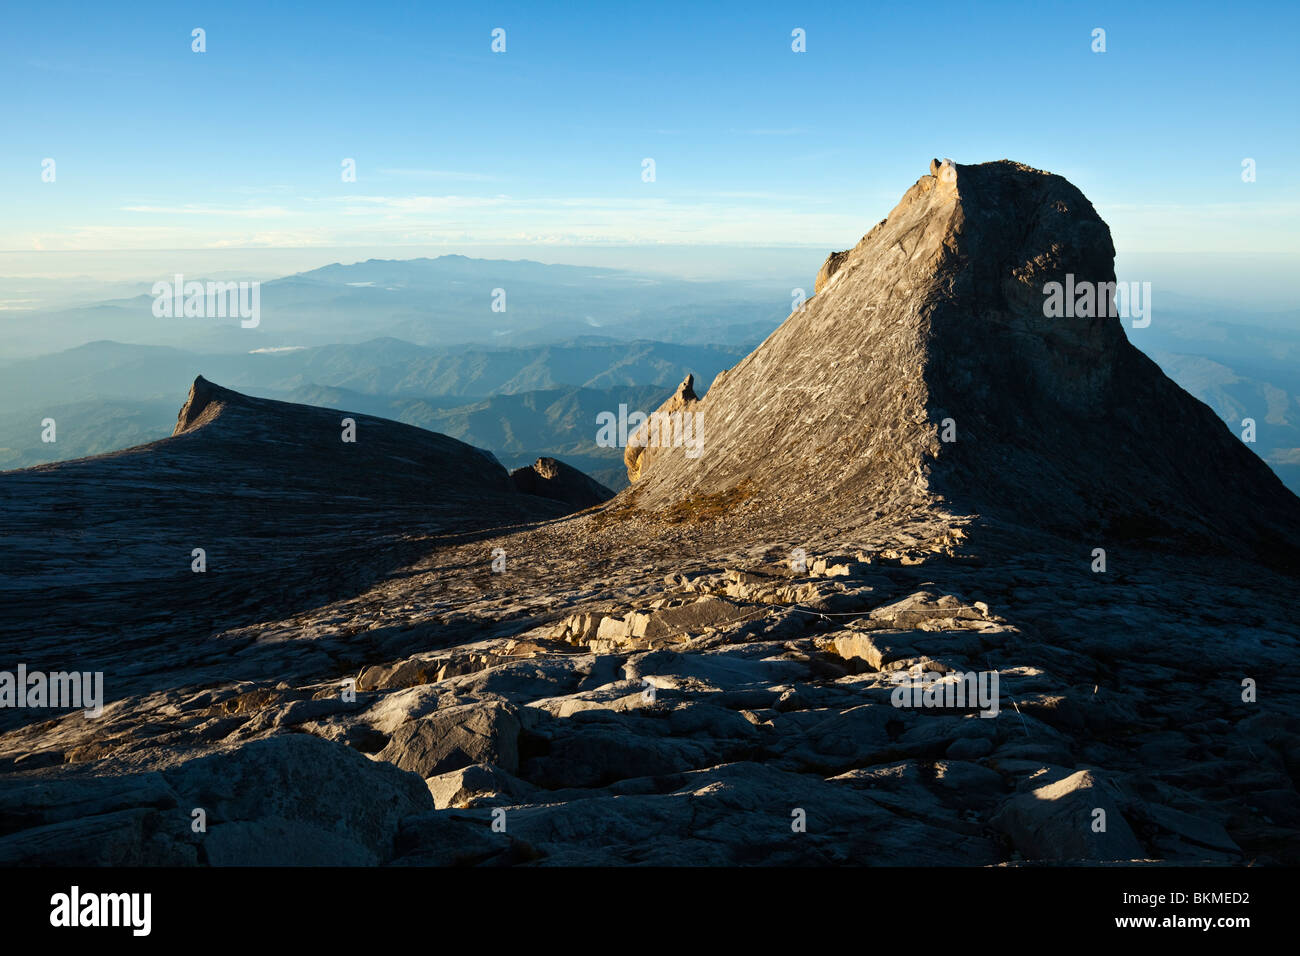 View from Low's Peak at the summit of Mt Kinabalu. Kinabalu National Park, Sabah, Borneo, Malaysia. - Stock Image